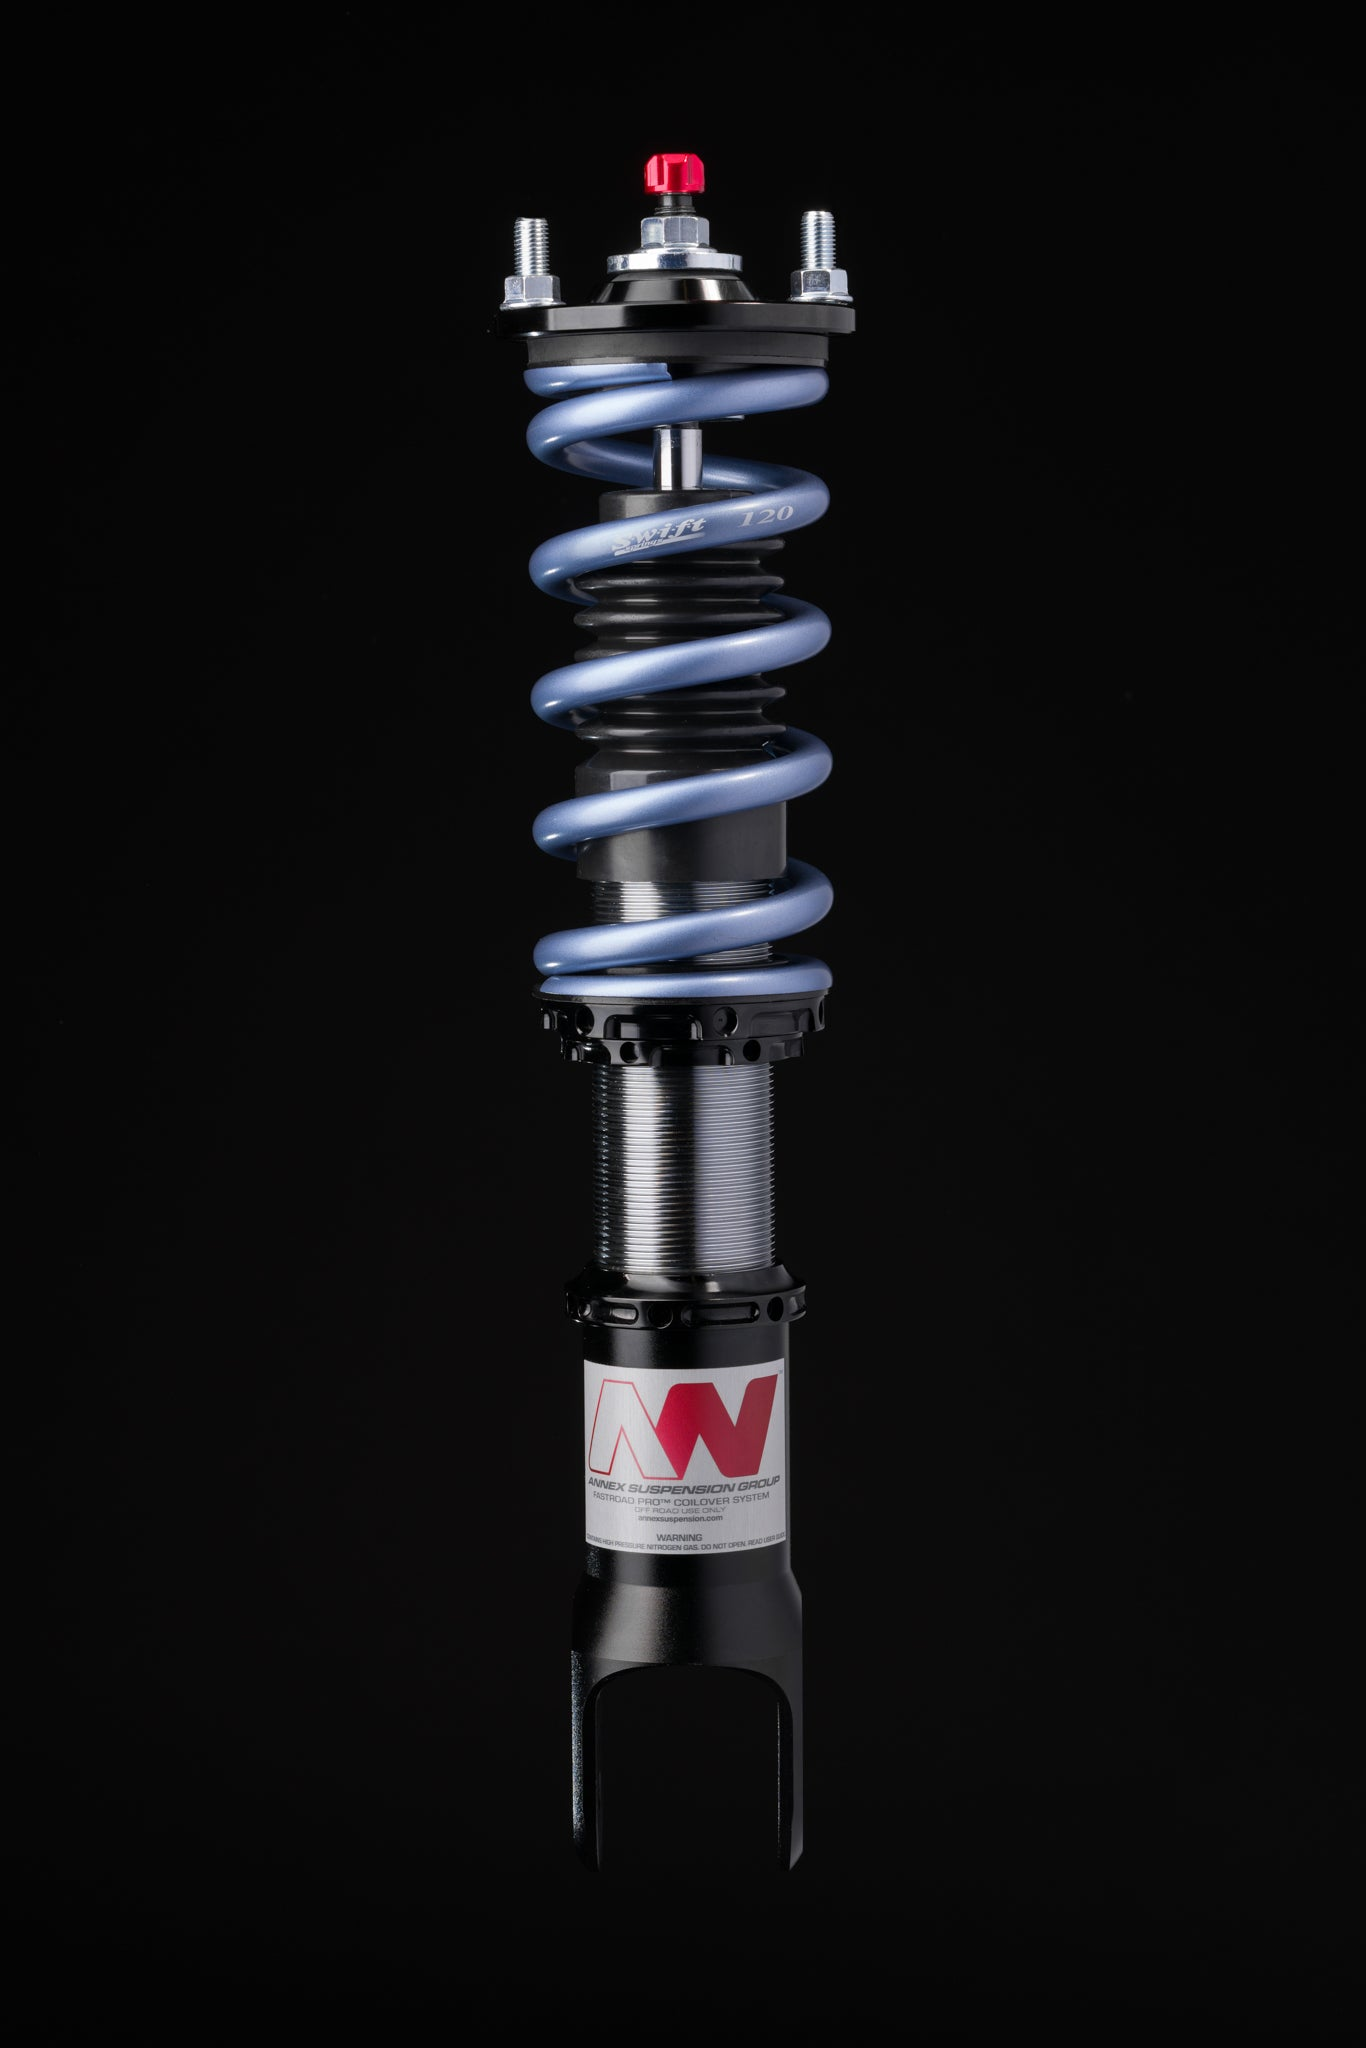 Fastroad Pro Coilovers by Annex Suspension  2006 2007 2008 2009 2010 2011 Honda Civic SI Comfort Performance Coilovers - Height, damper adjustable -Rust, corrosion resistance-NVH Isolator- Radial Bearing- Camber Plates- Swift Springs- Track Proven- Dyno tested, quality control, hand assembled in USA